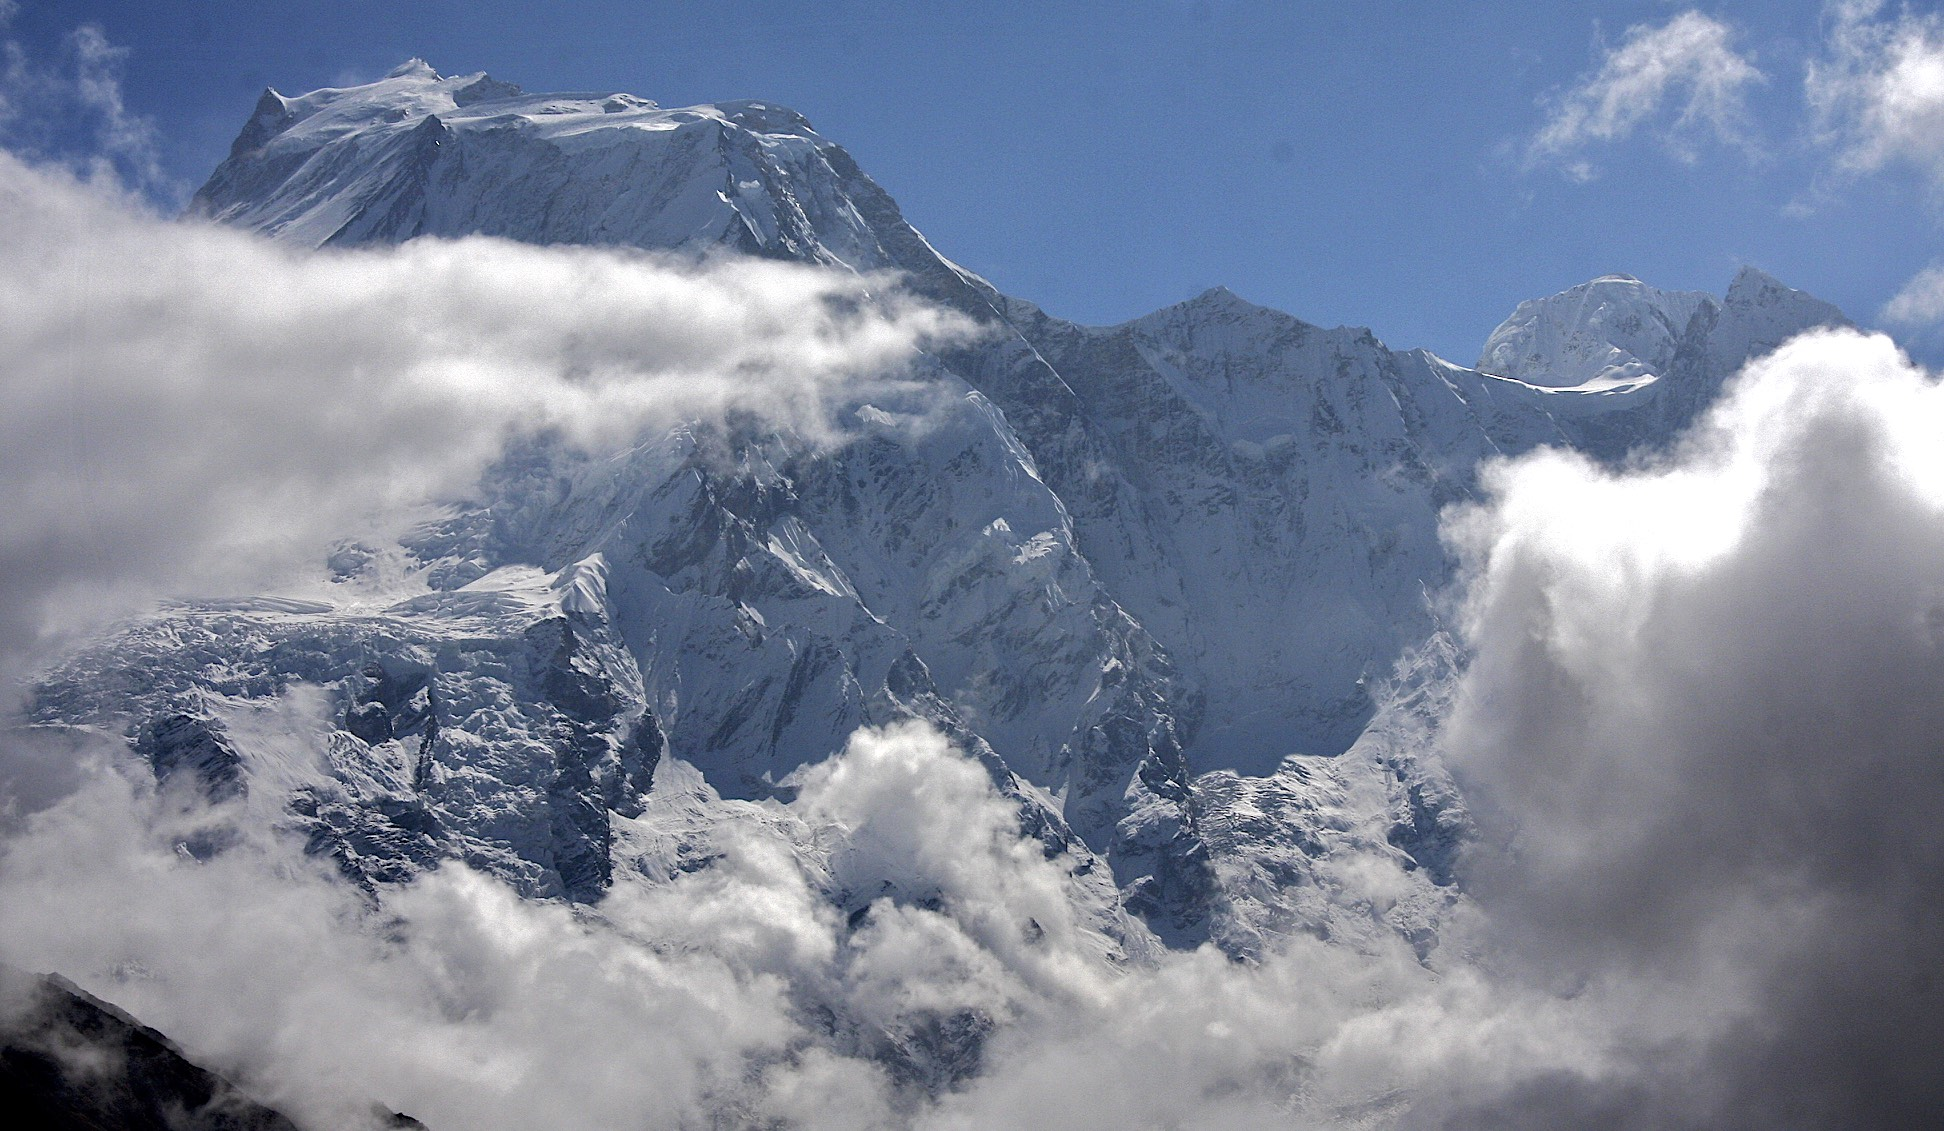 West face of Manaslu and Peak 29 on the right